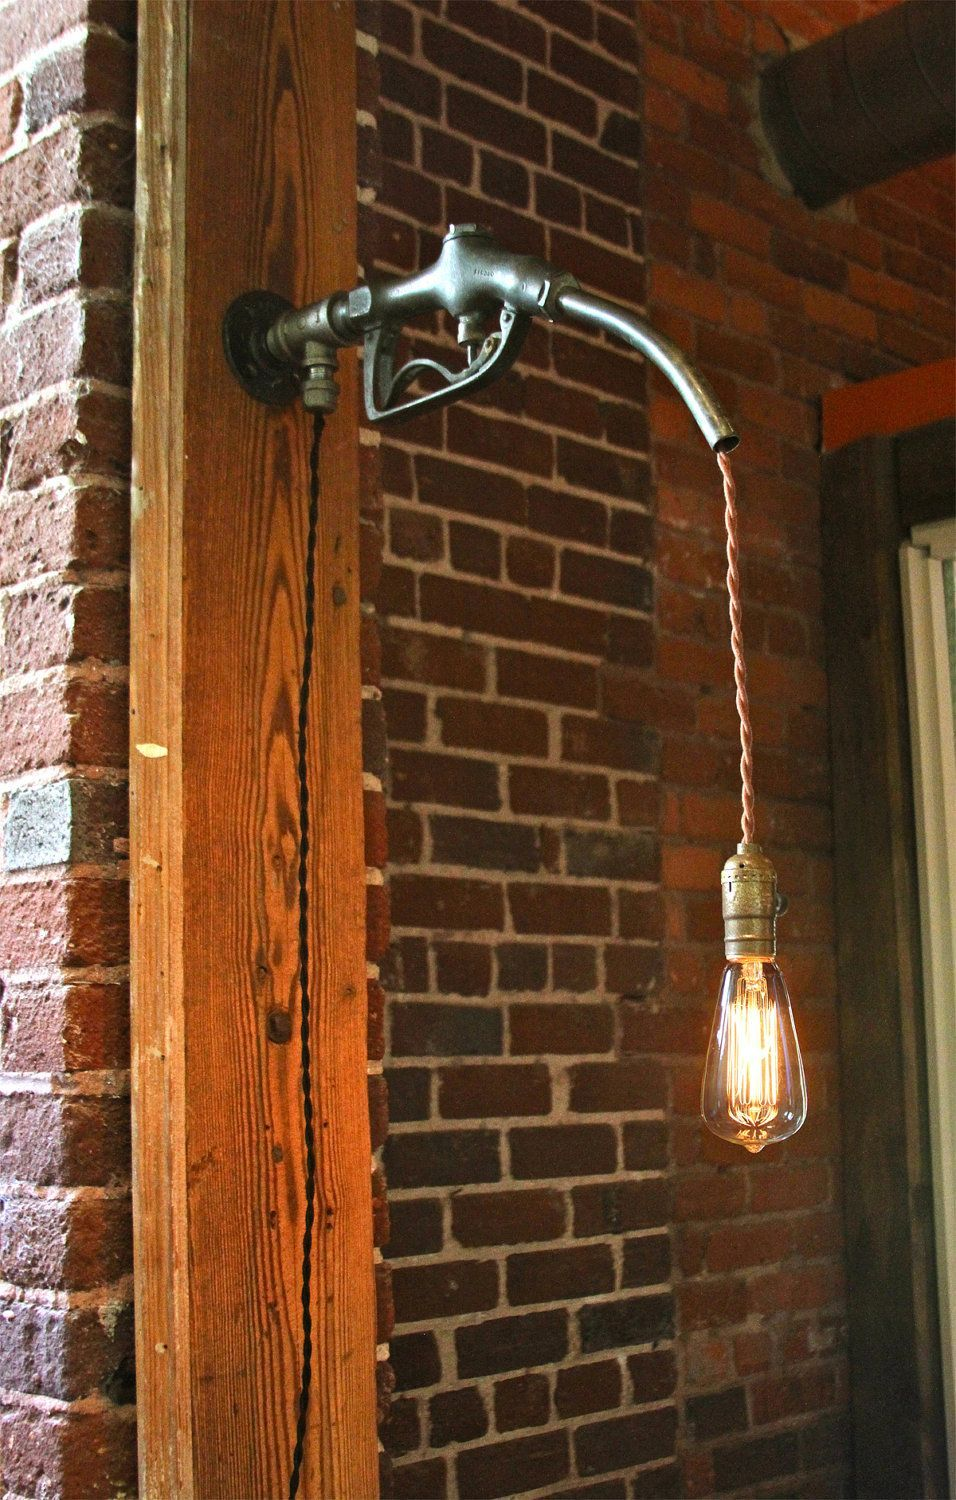 Vintage Gas Pump Nozzle Light Fixture #garagemancaves